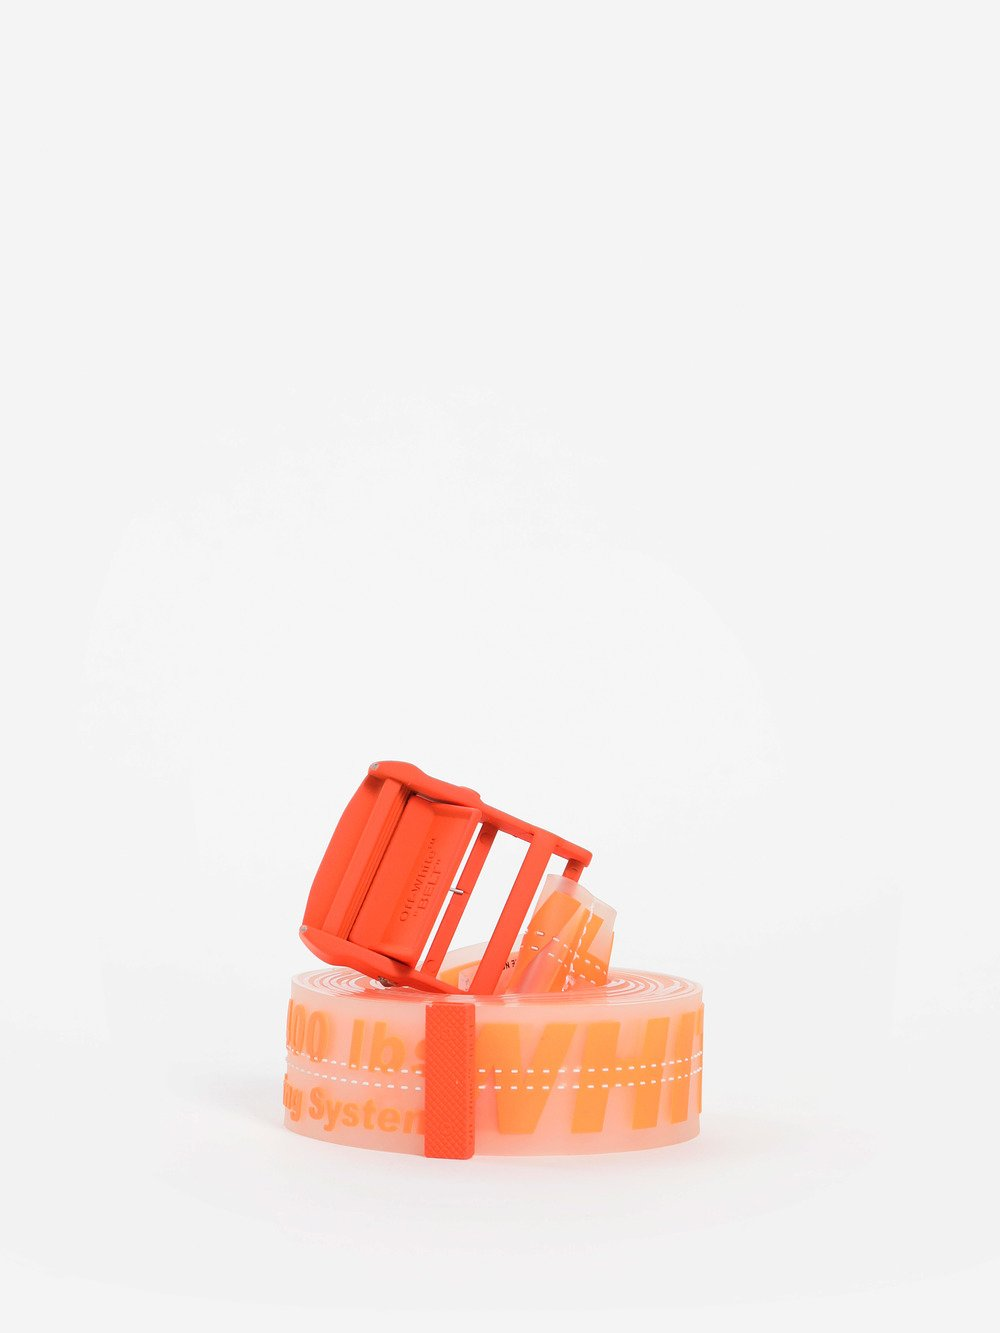 Off-White Off White C O Virgil Abloh Men S Orange Rubber Industrial Belt In e9e104e68904